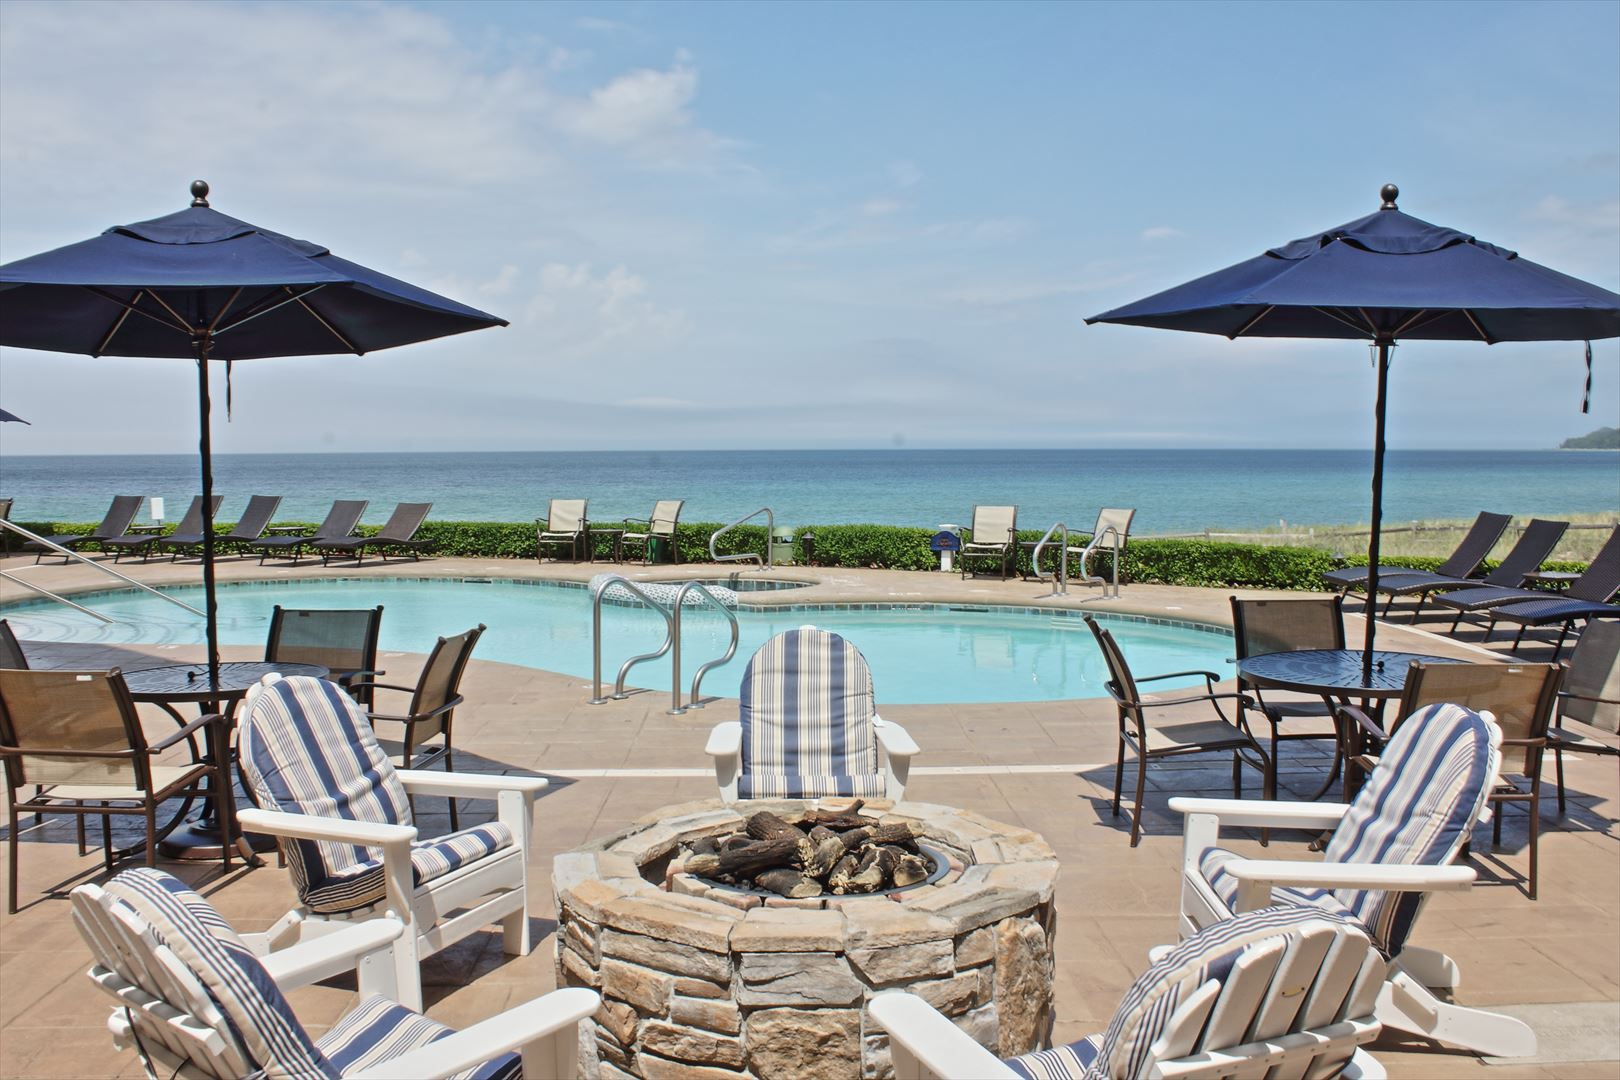 Enjoy fires on the outdoor pool deck overlooking Lake Michigan